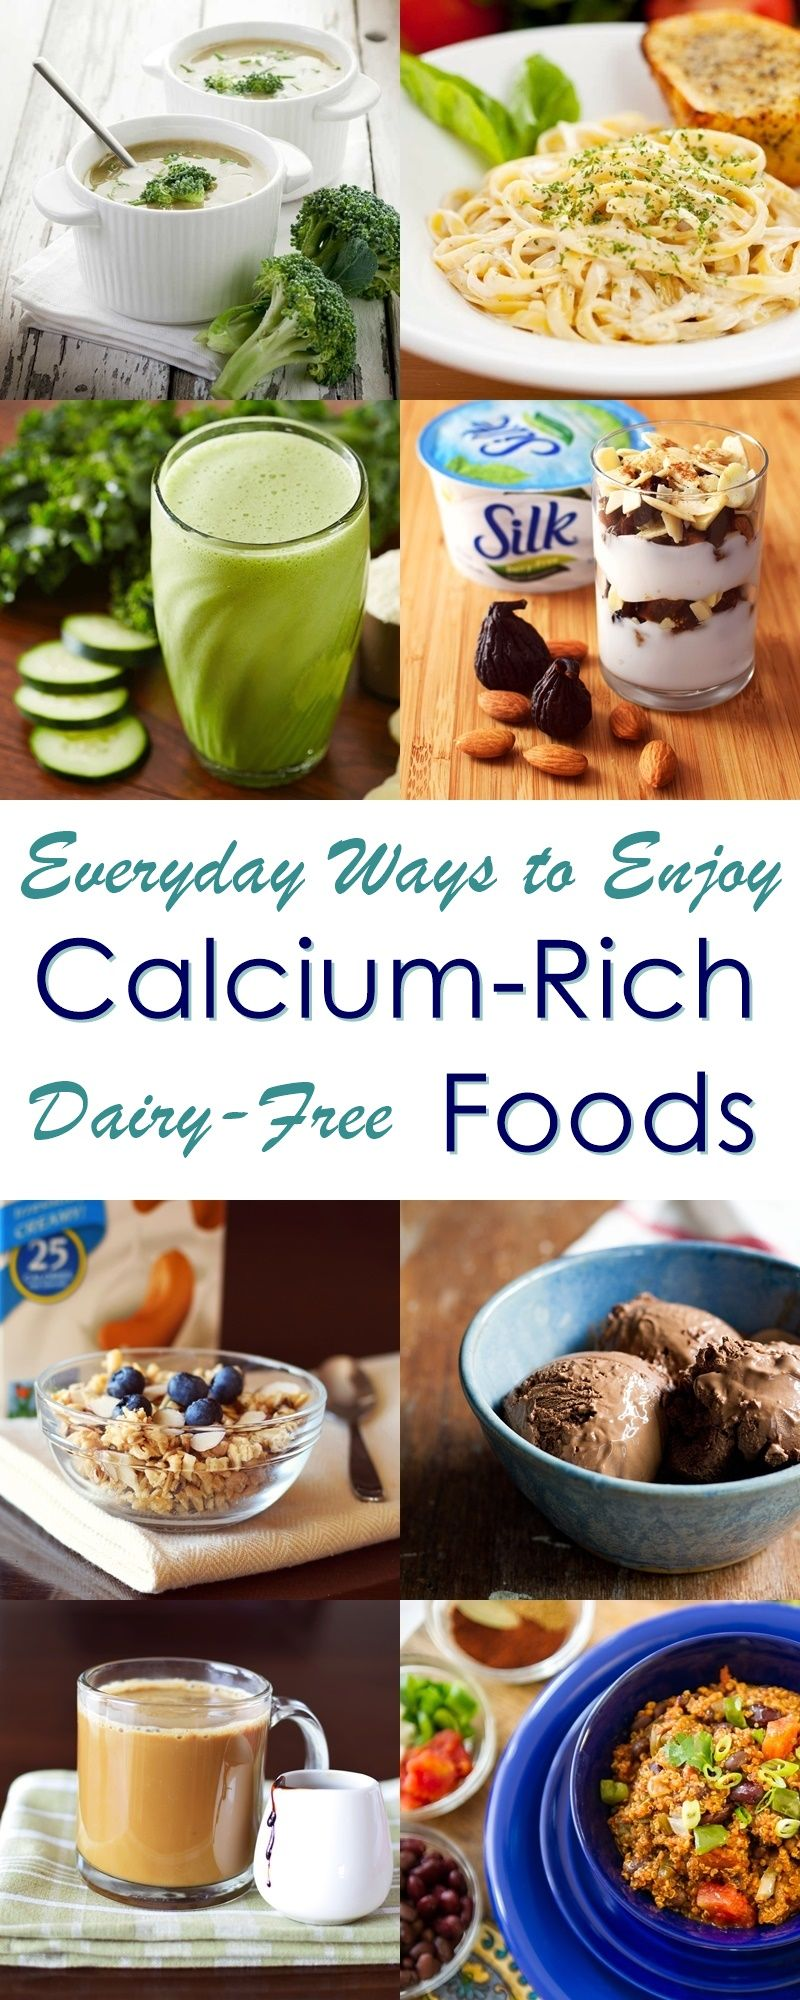 CalciumRich Foods Over 25 Everyday Ways to Enjoy Them